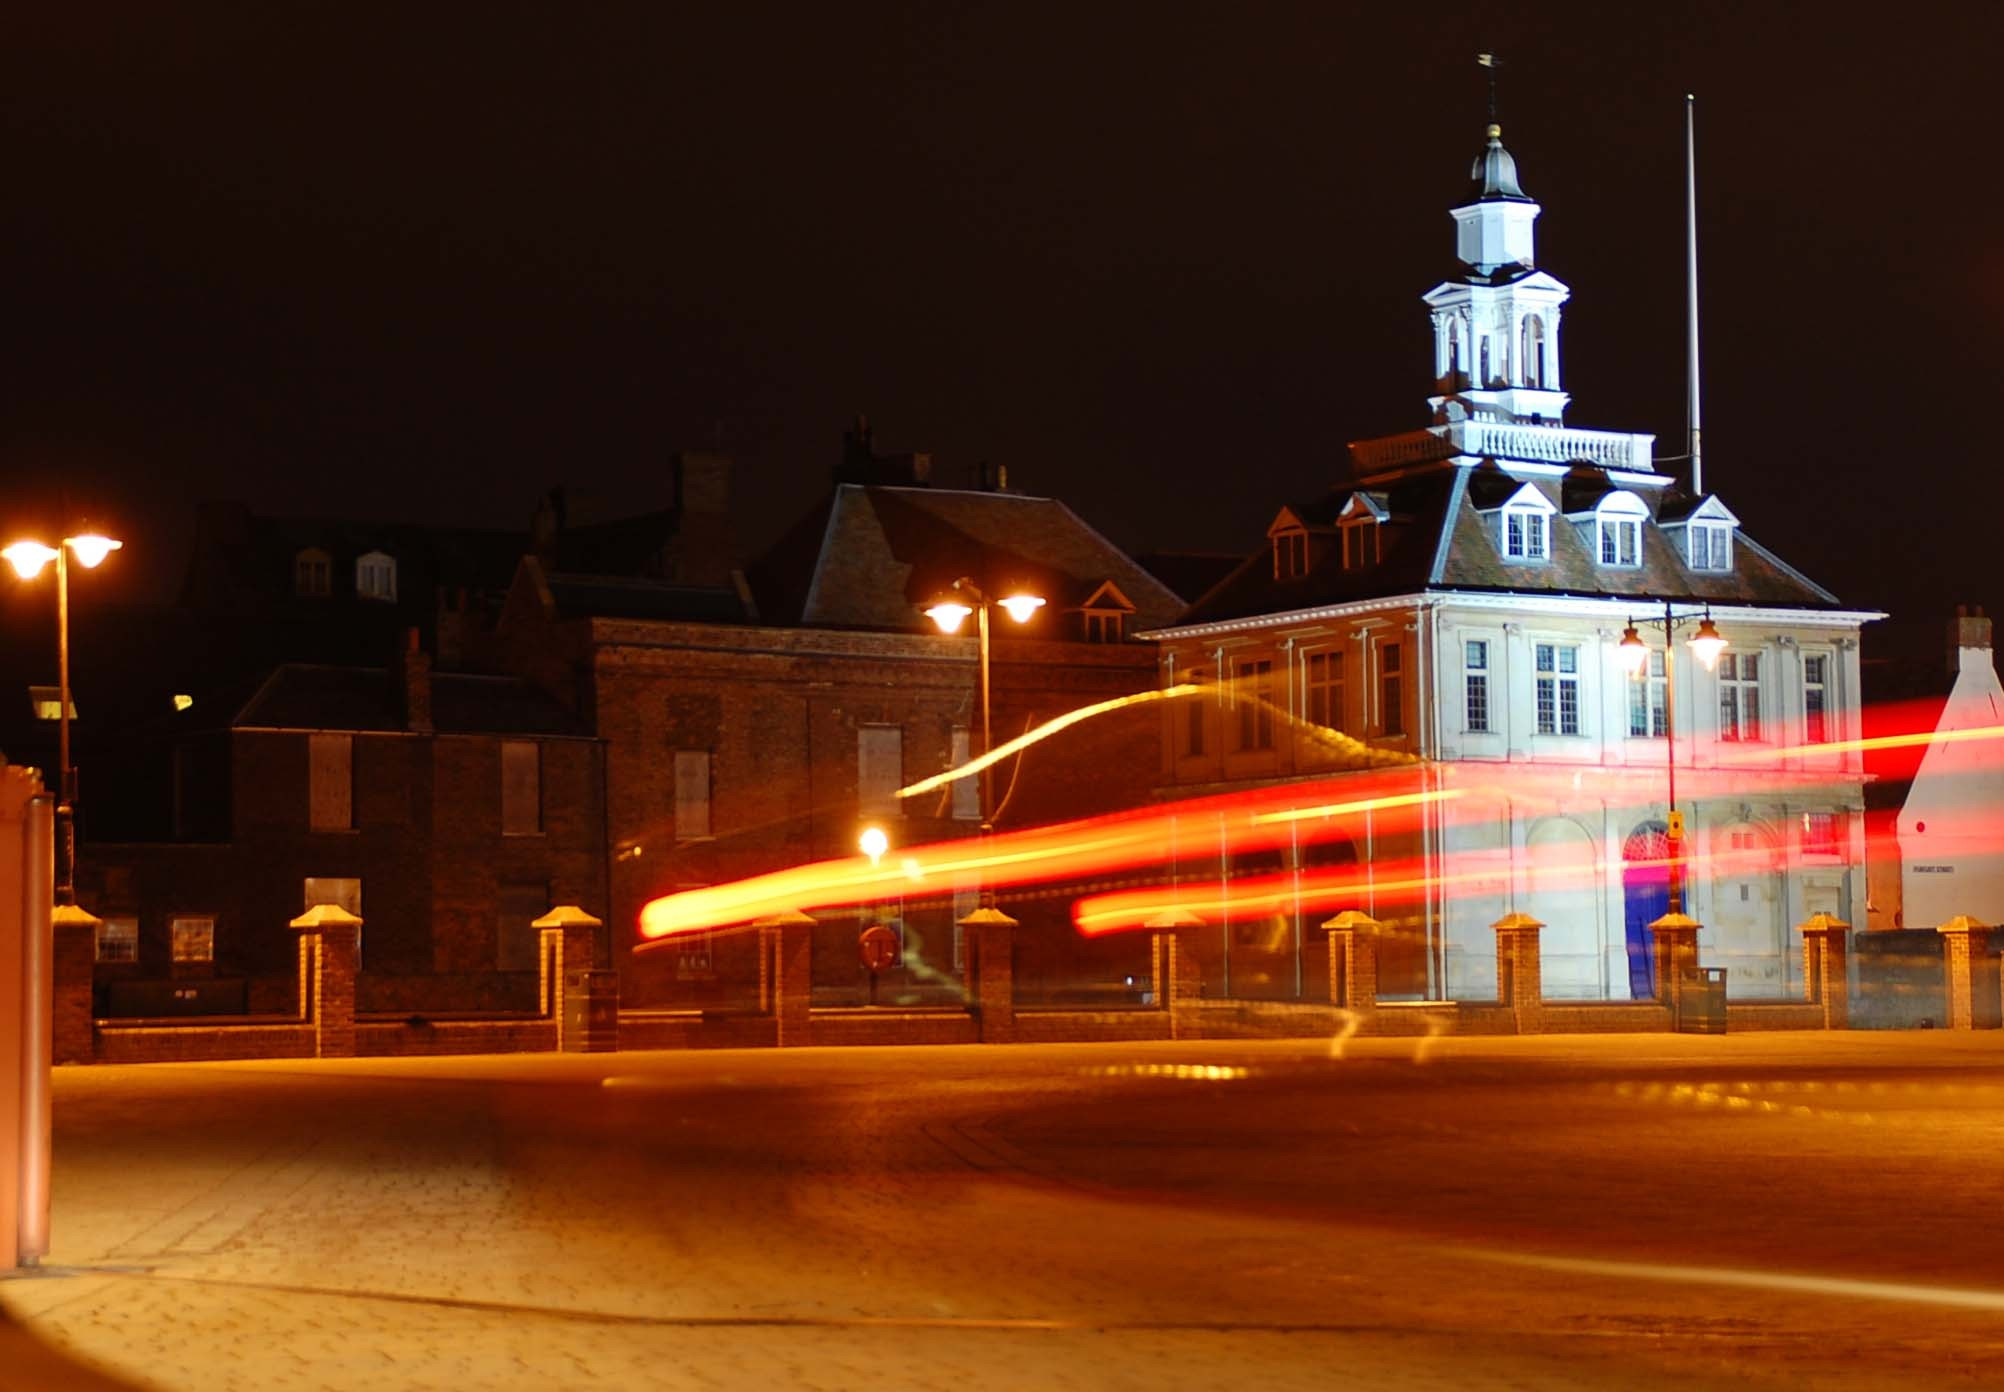 Photograph Customs House, King's Lynn by Bridget Plowright on 500px